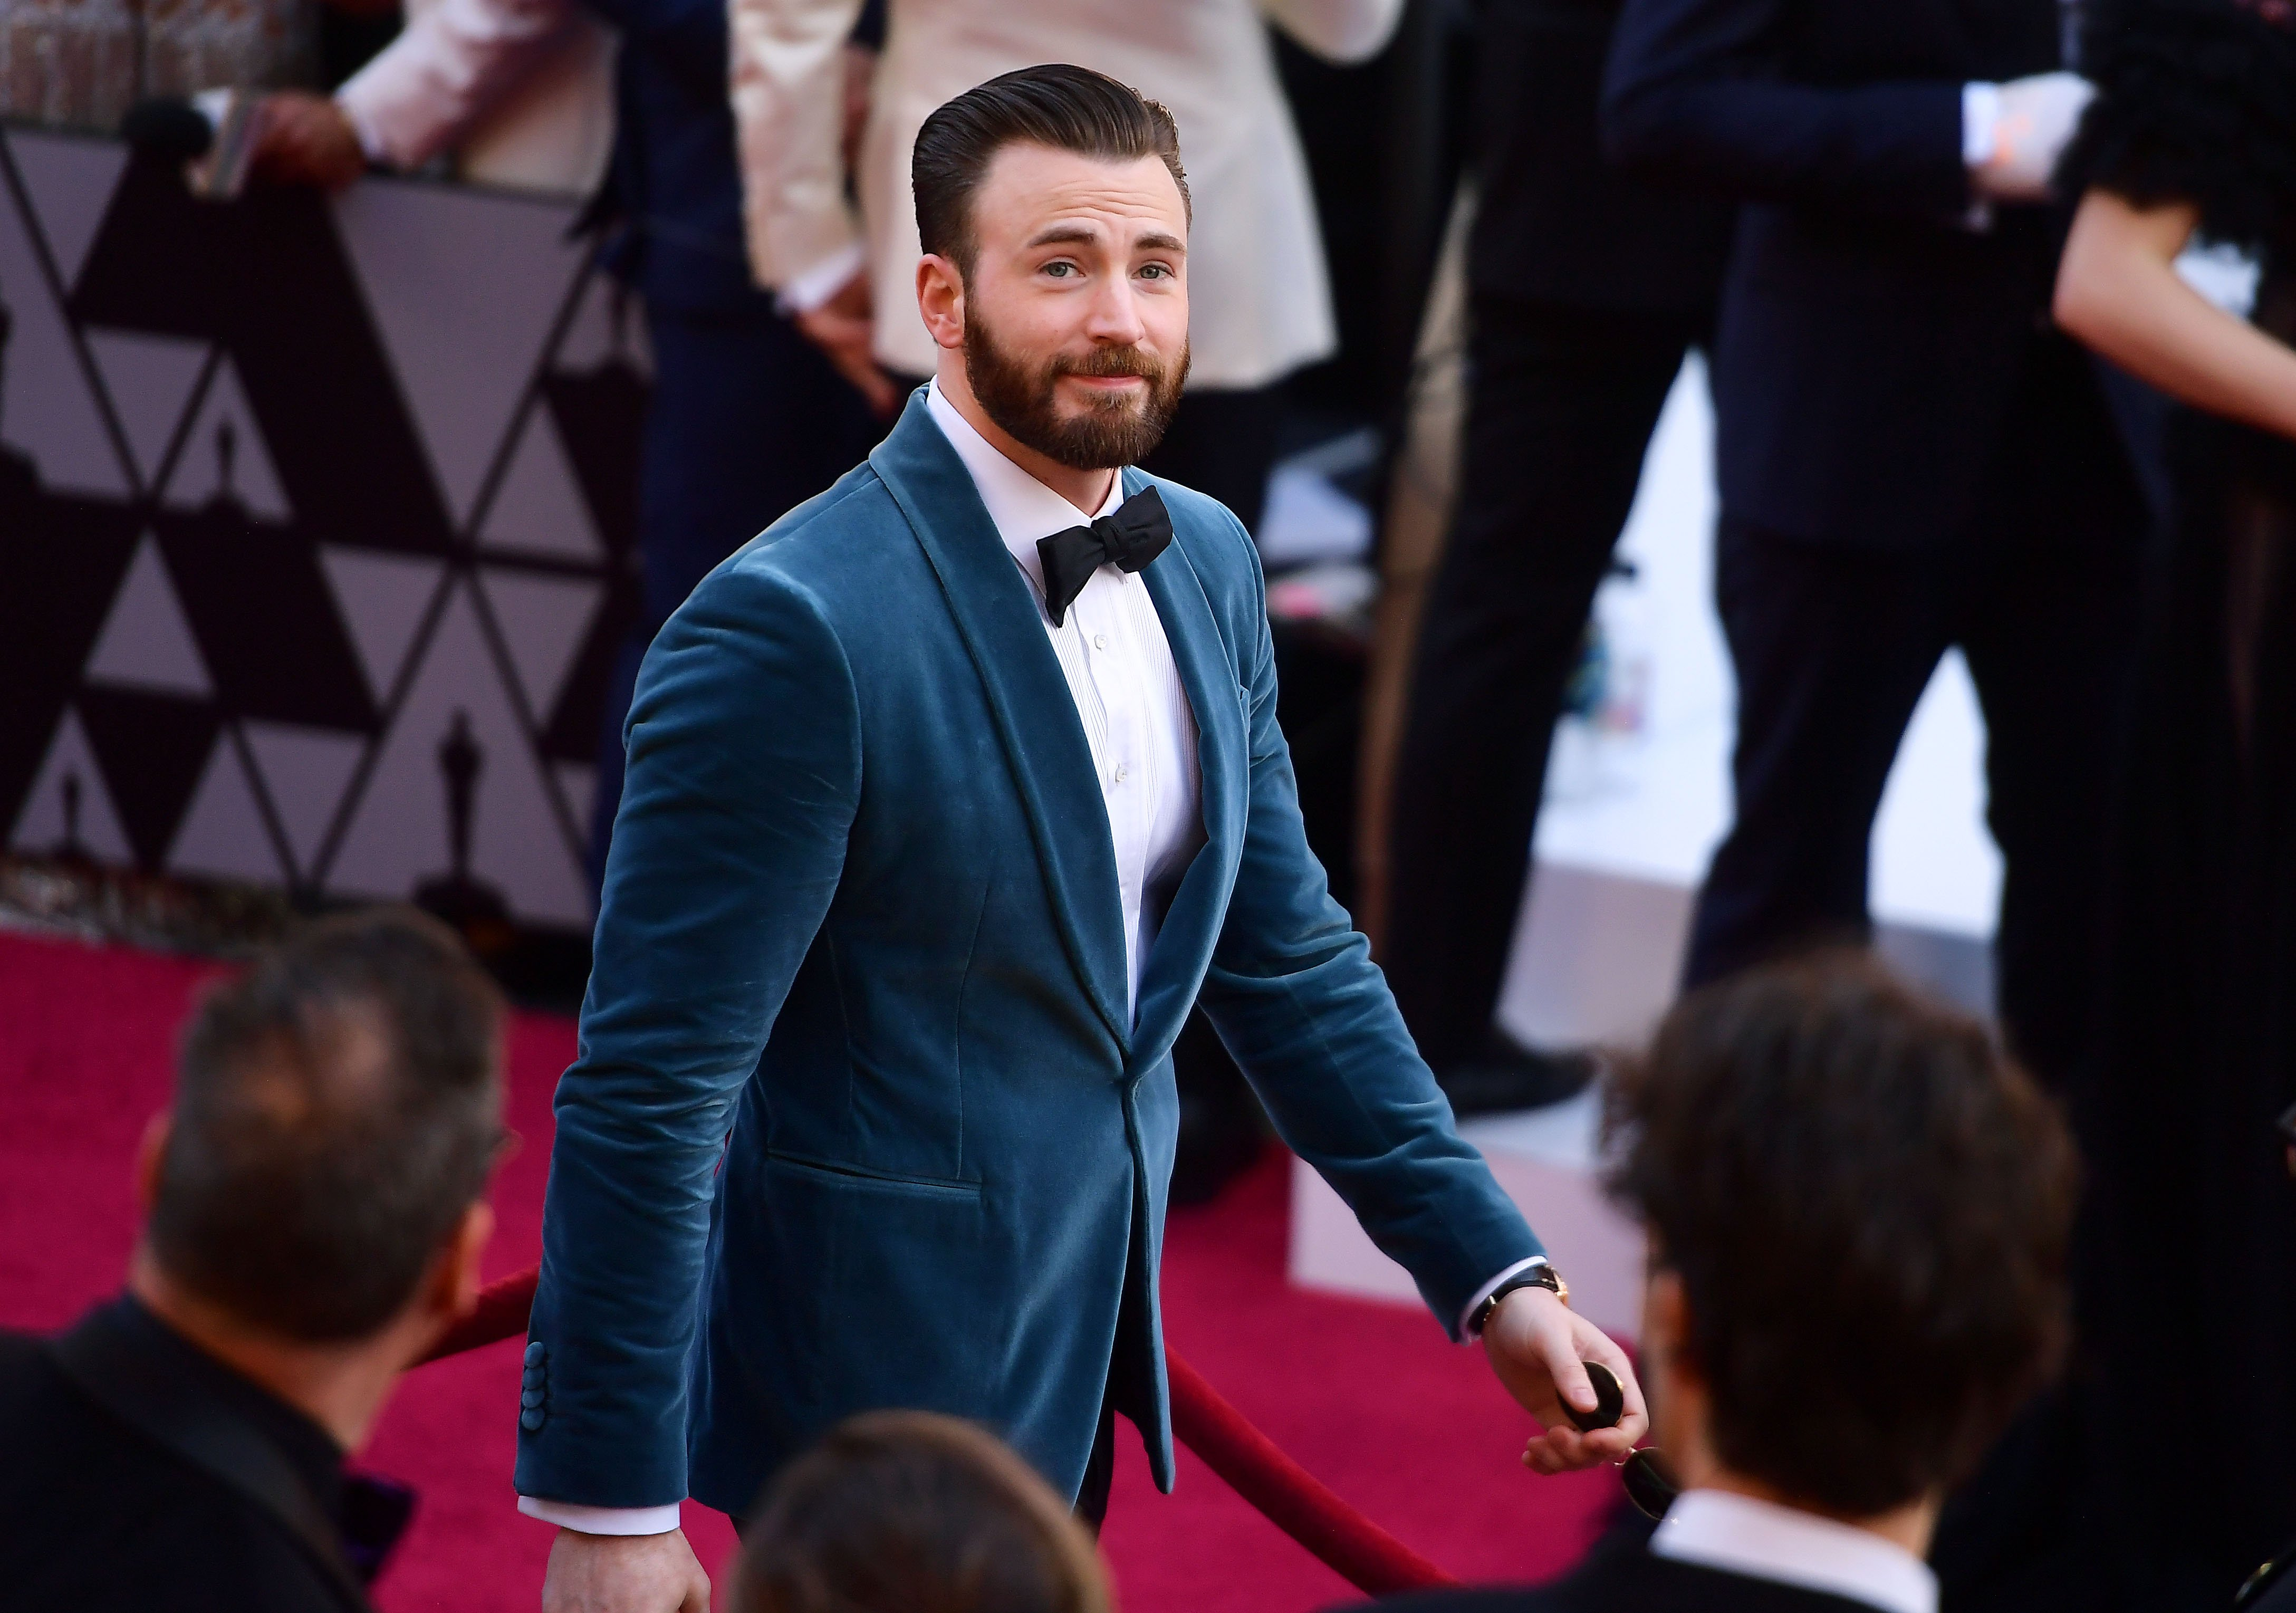 Chris Evans attends the 91st Annual Academy Awards at Hollywood and Highland on February 24, 2019 | Photo: Getty images